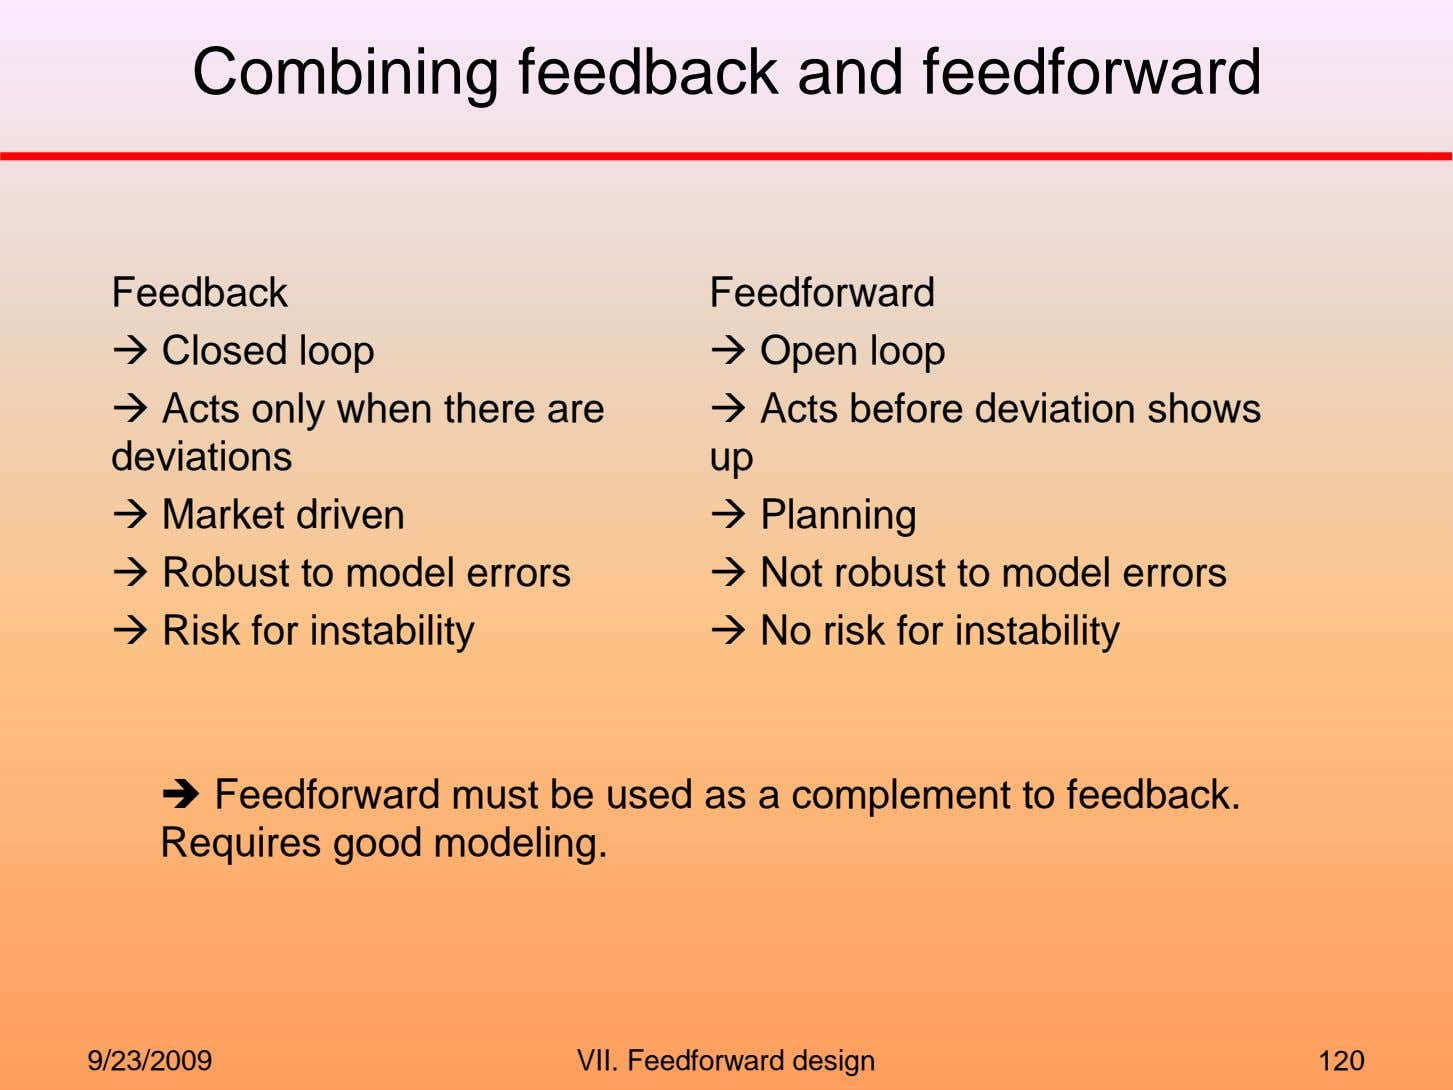 Combining feedback and feedforward Feedback Closed loop Acts only when there are deviations Market driven